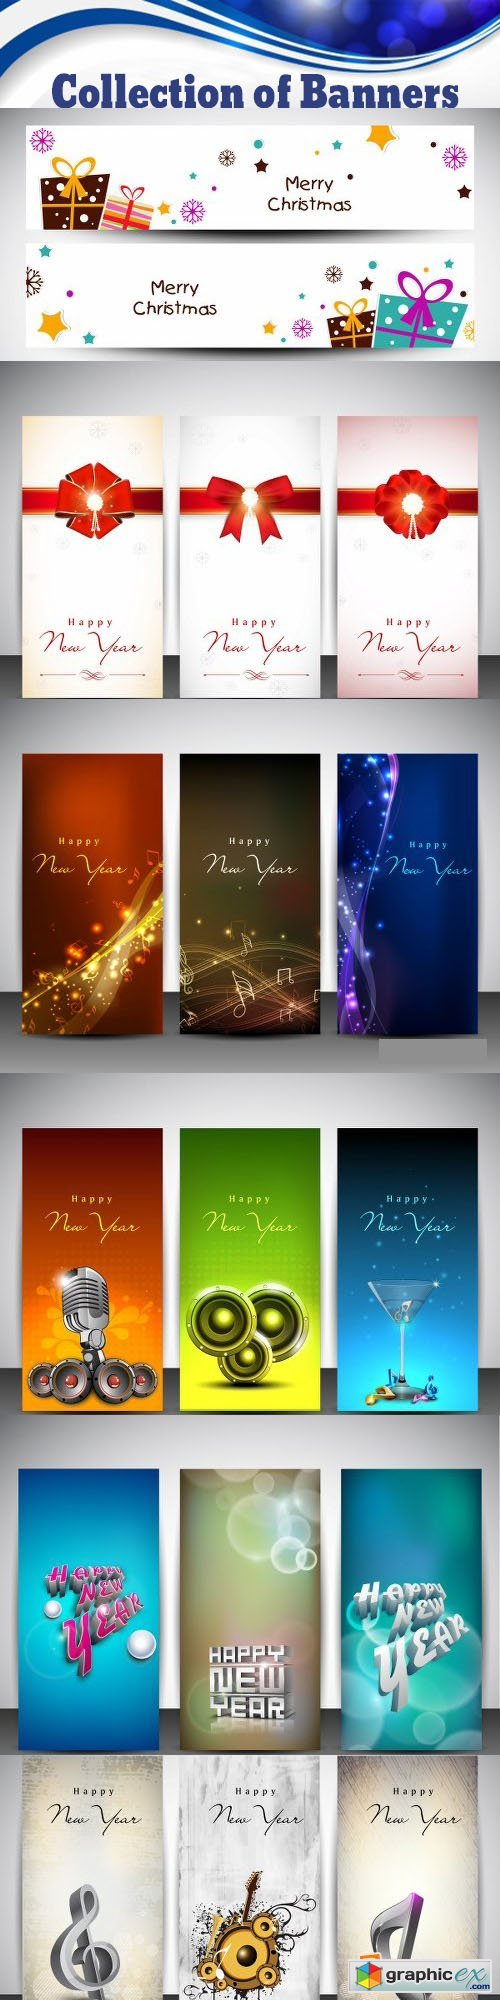 Collection of Banners Vectors and Illustrations